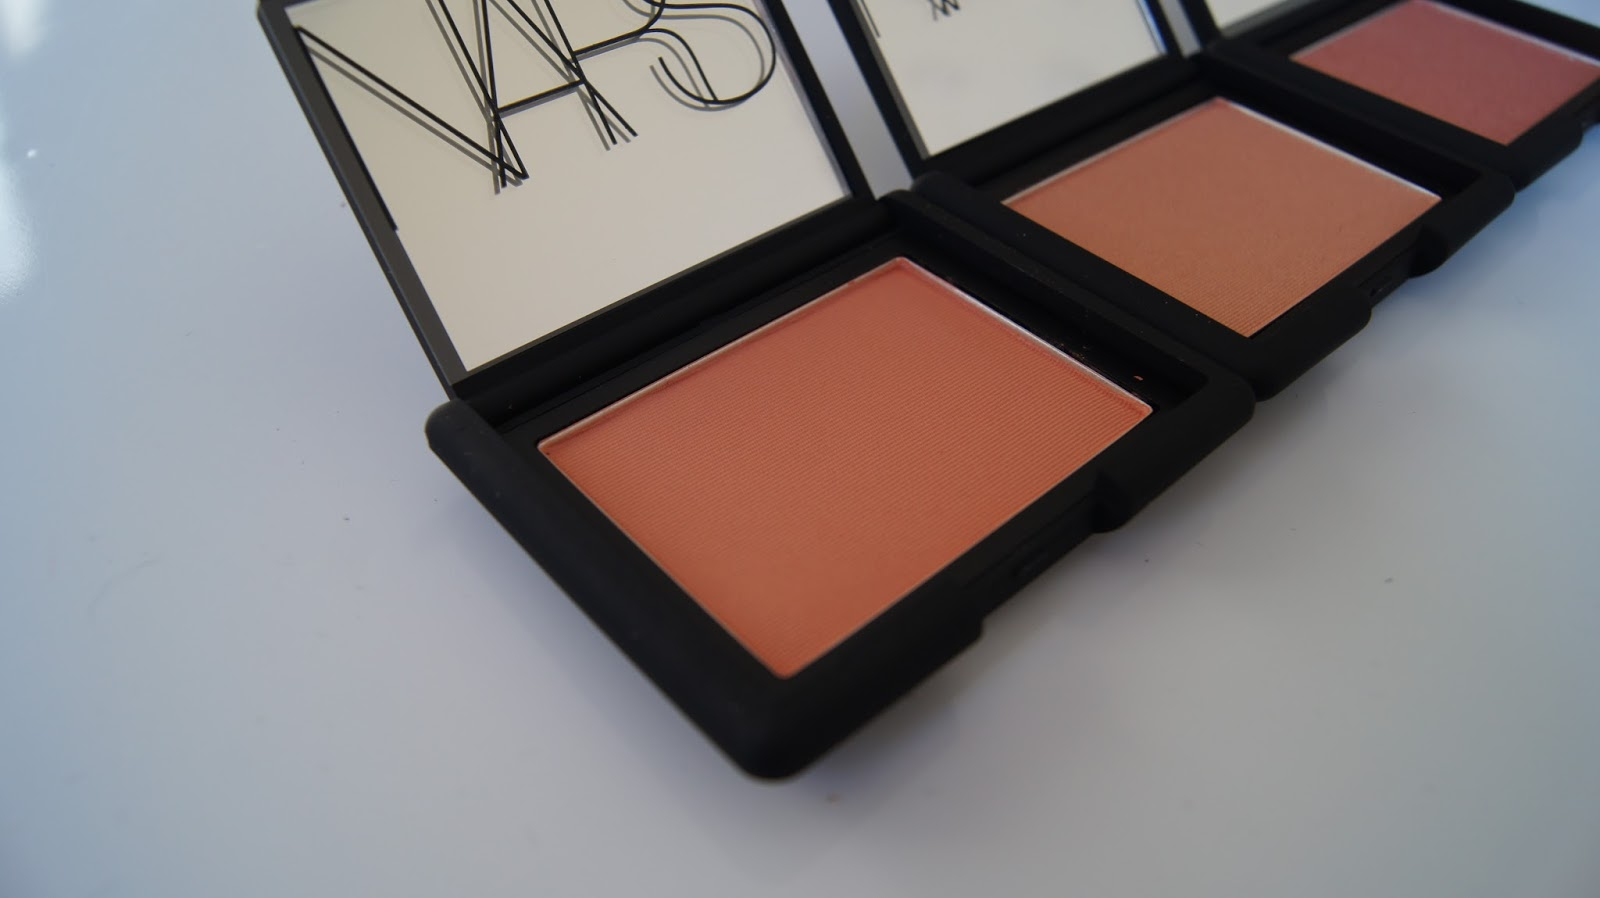 NARS Gina review